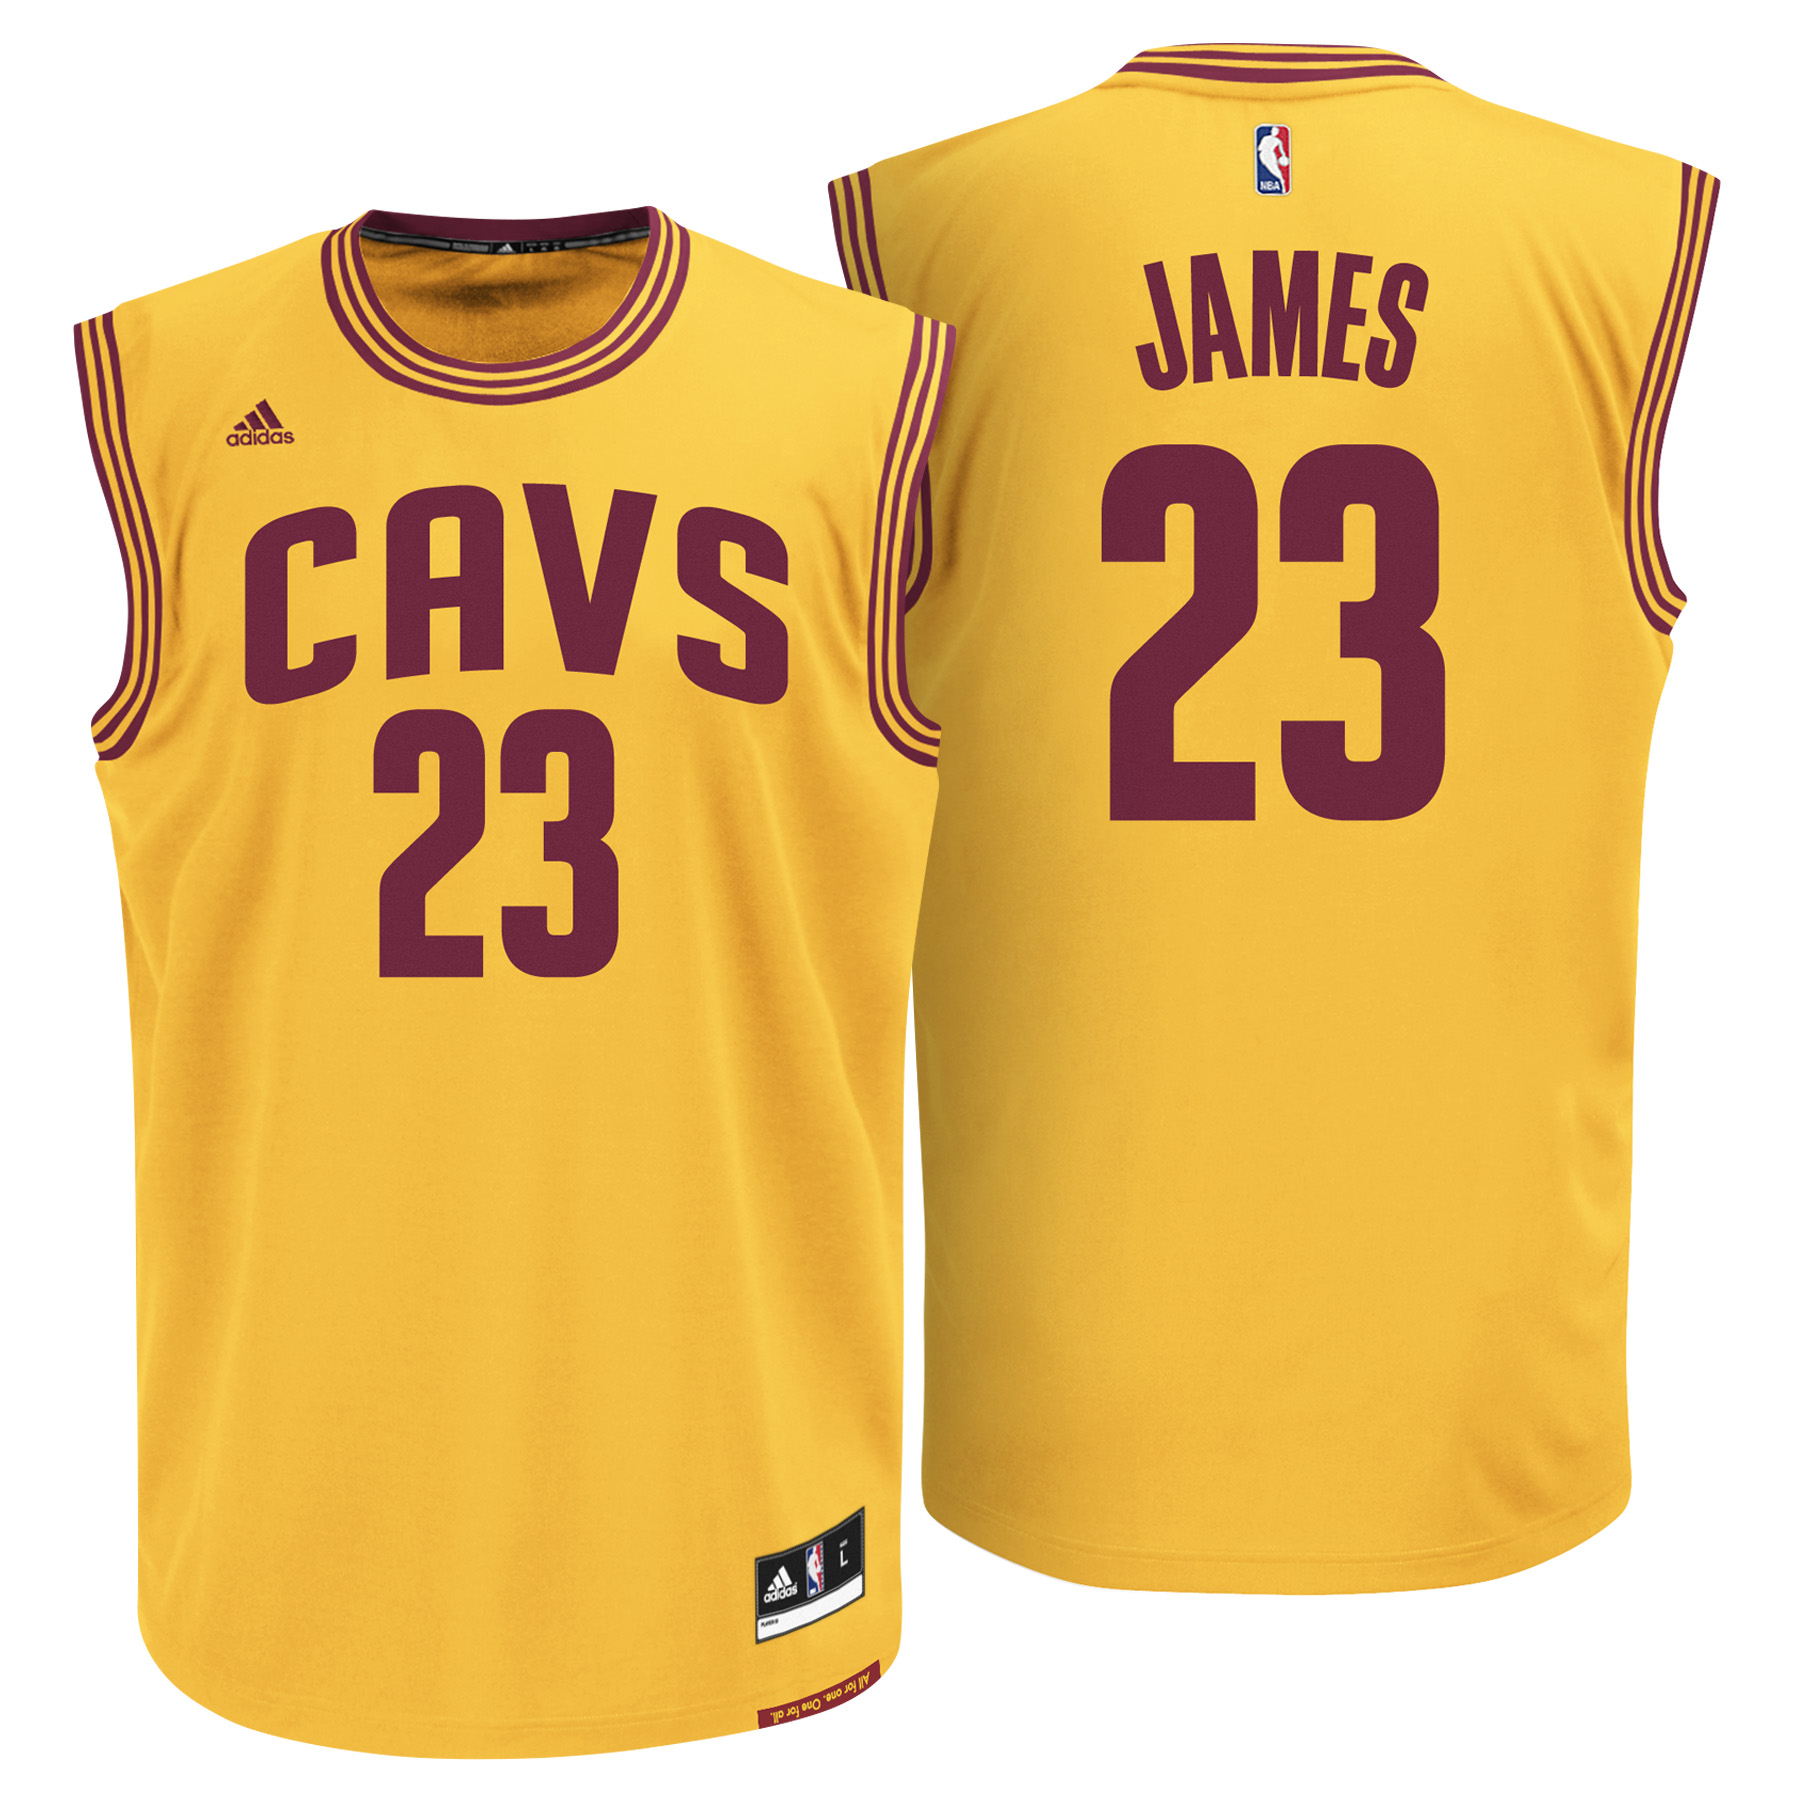 Cleveland Cavaliers Alternate Replica Jersey - Lebron James - Mens